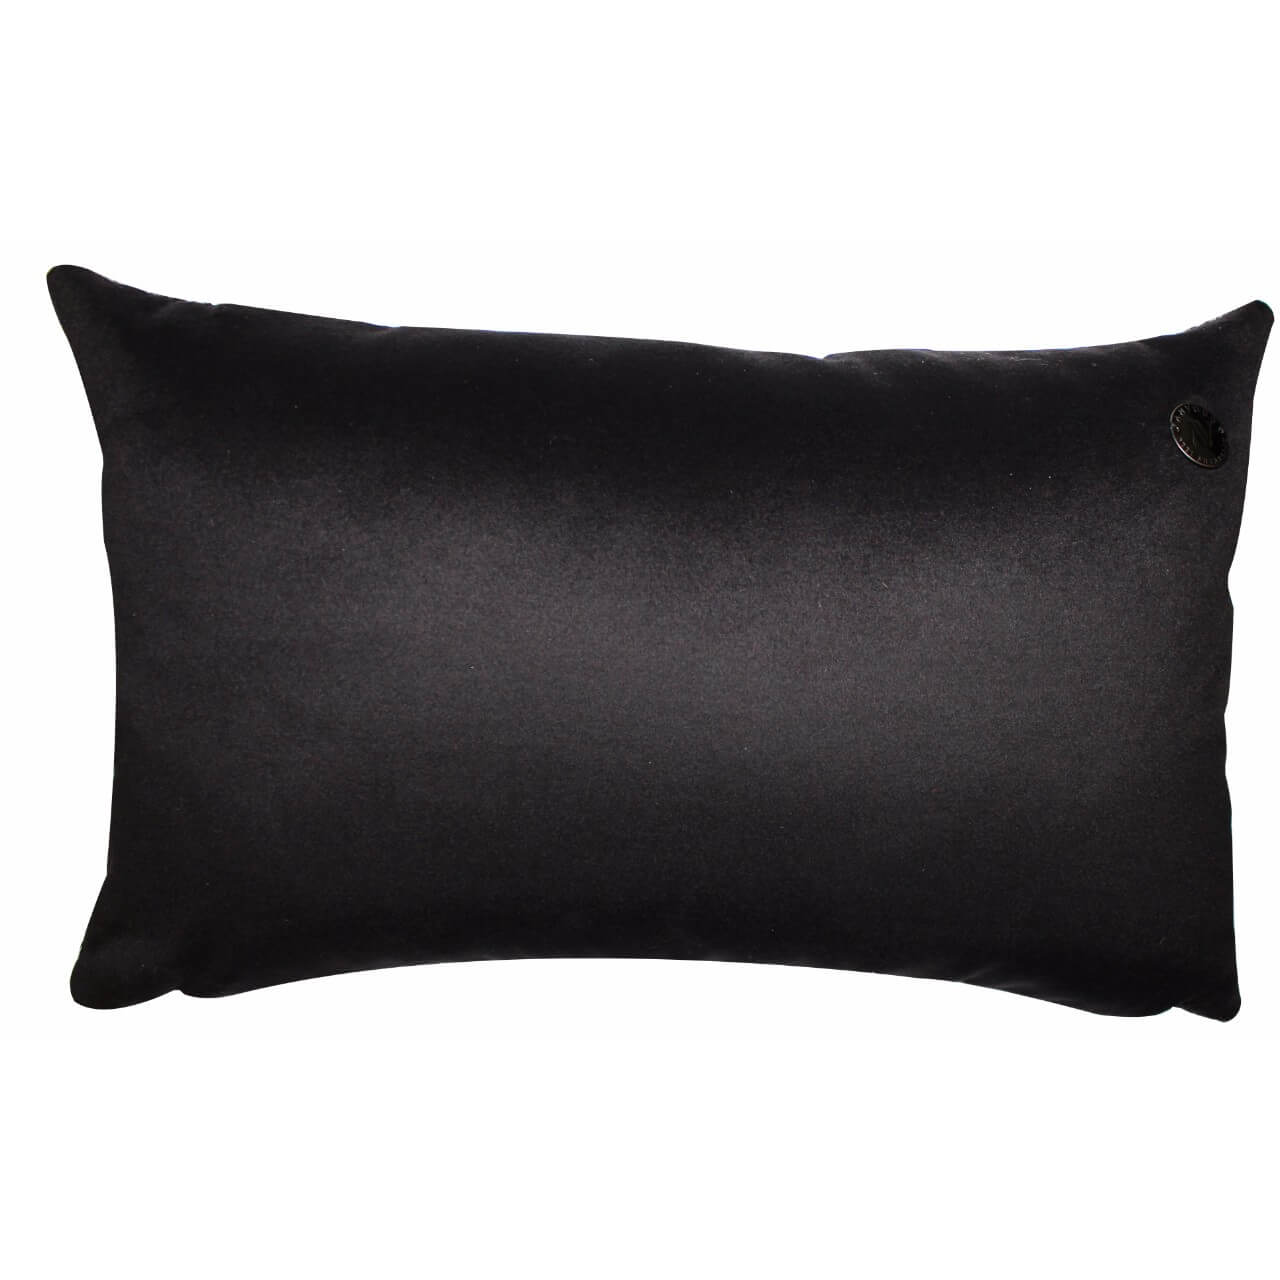 Cavallino Pillow- 35x55cm-(RENK_Croco)- (İSİM_Croco the Recta)(CPCRO20017BL3555) arka - ANVOGG FEEL SHEARLING | ANVOGG